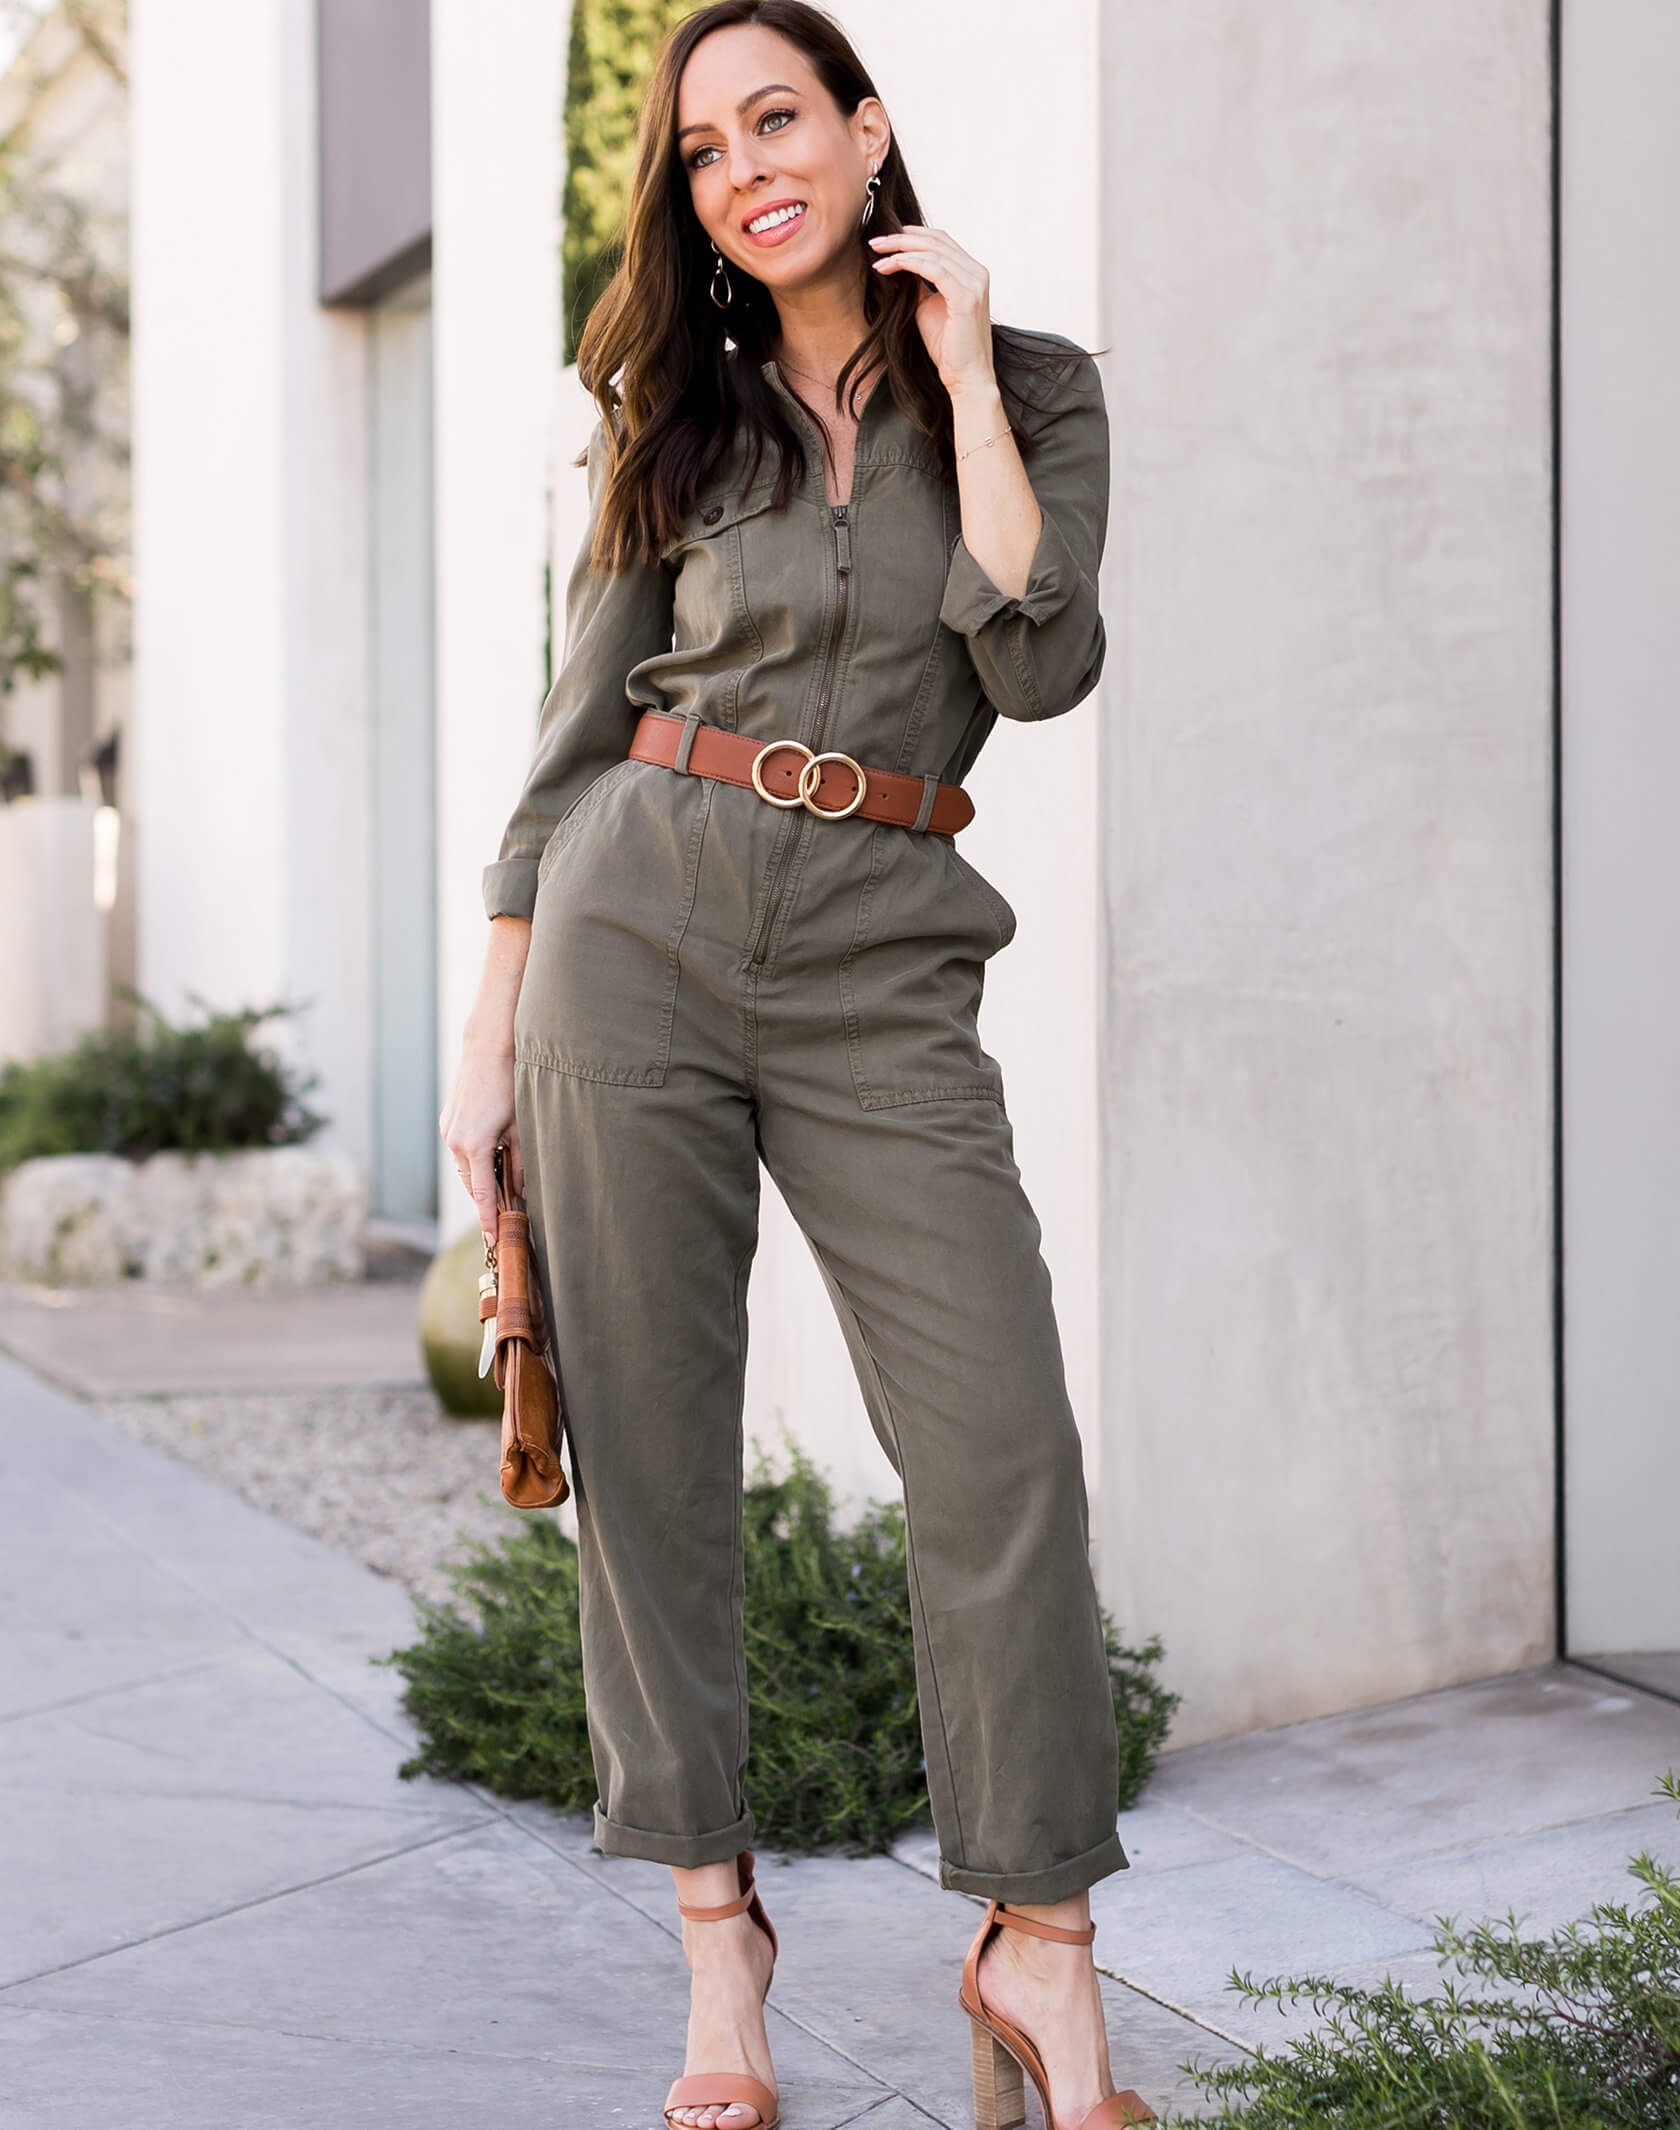 Sydne Style shows how to wear the boilersuit trend for spring for petite girls